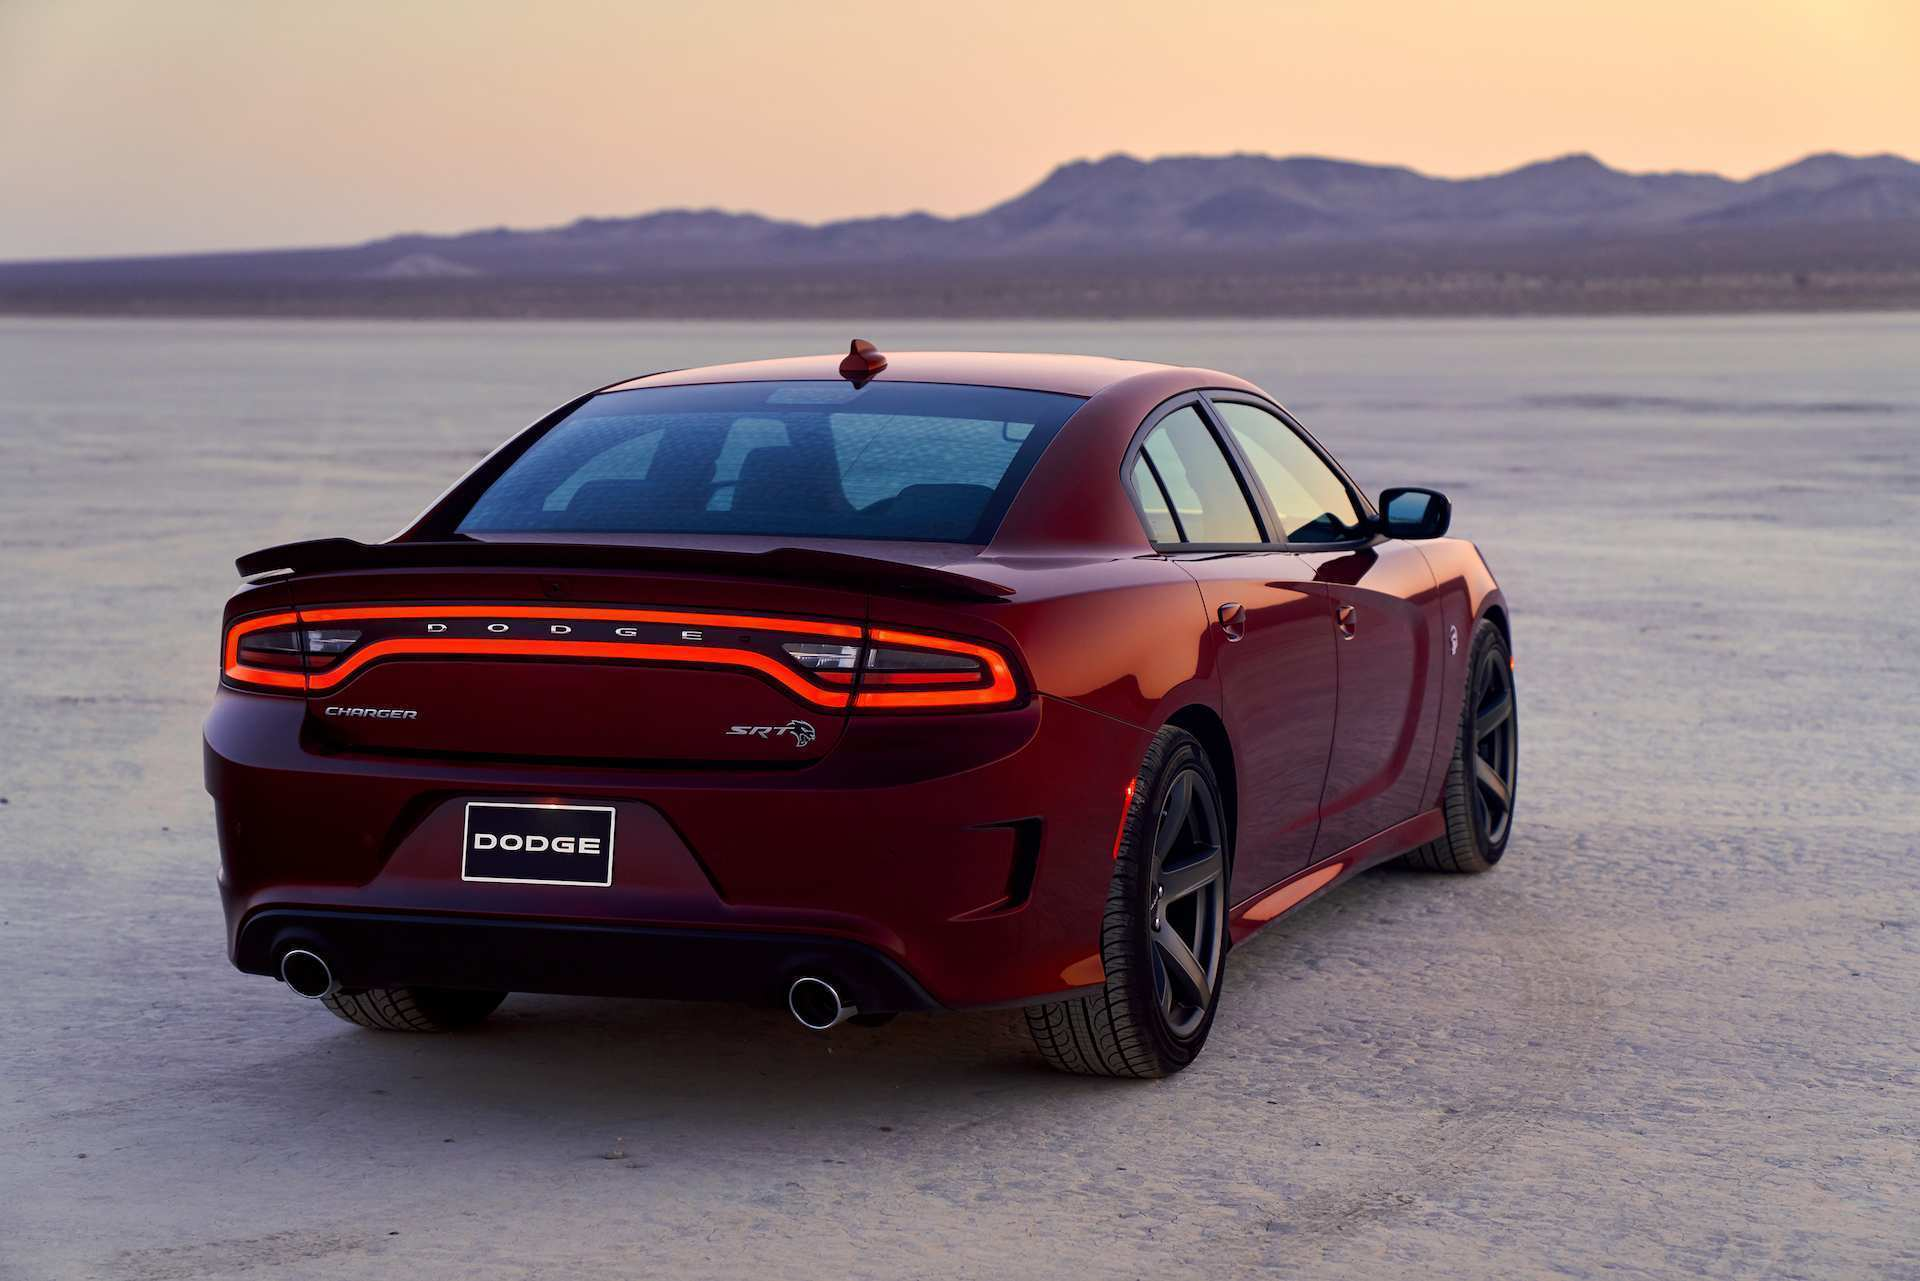 67 All New 2020 Dodge Charger History